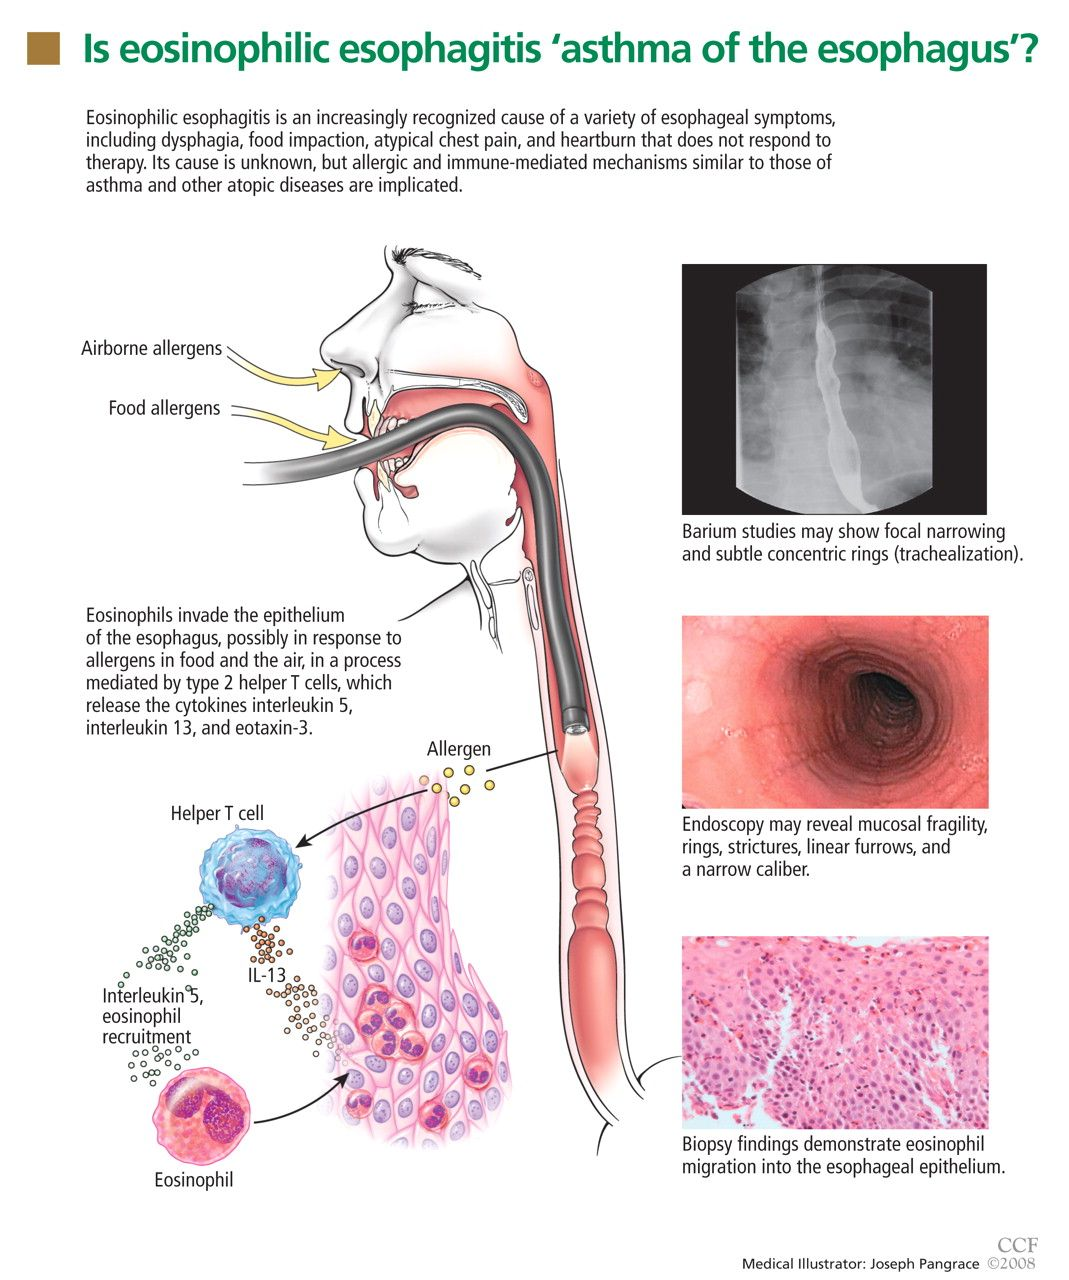 eosinophilic esophagitis an increasingly recognized cause of dysphagia food impaction and refractory heartburn cleveland clinic journal of medicine [ 1069 x 1280 Pixel ]